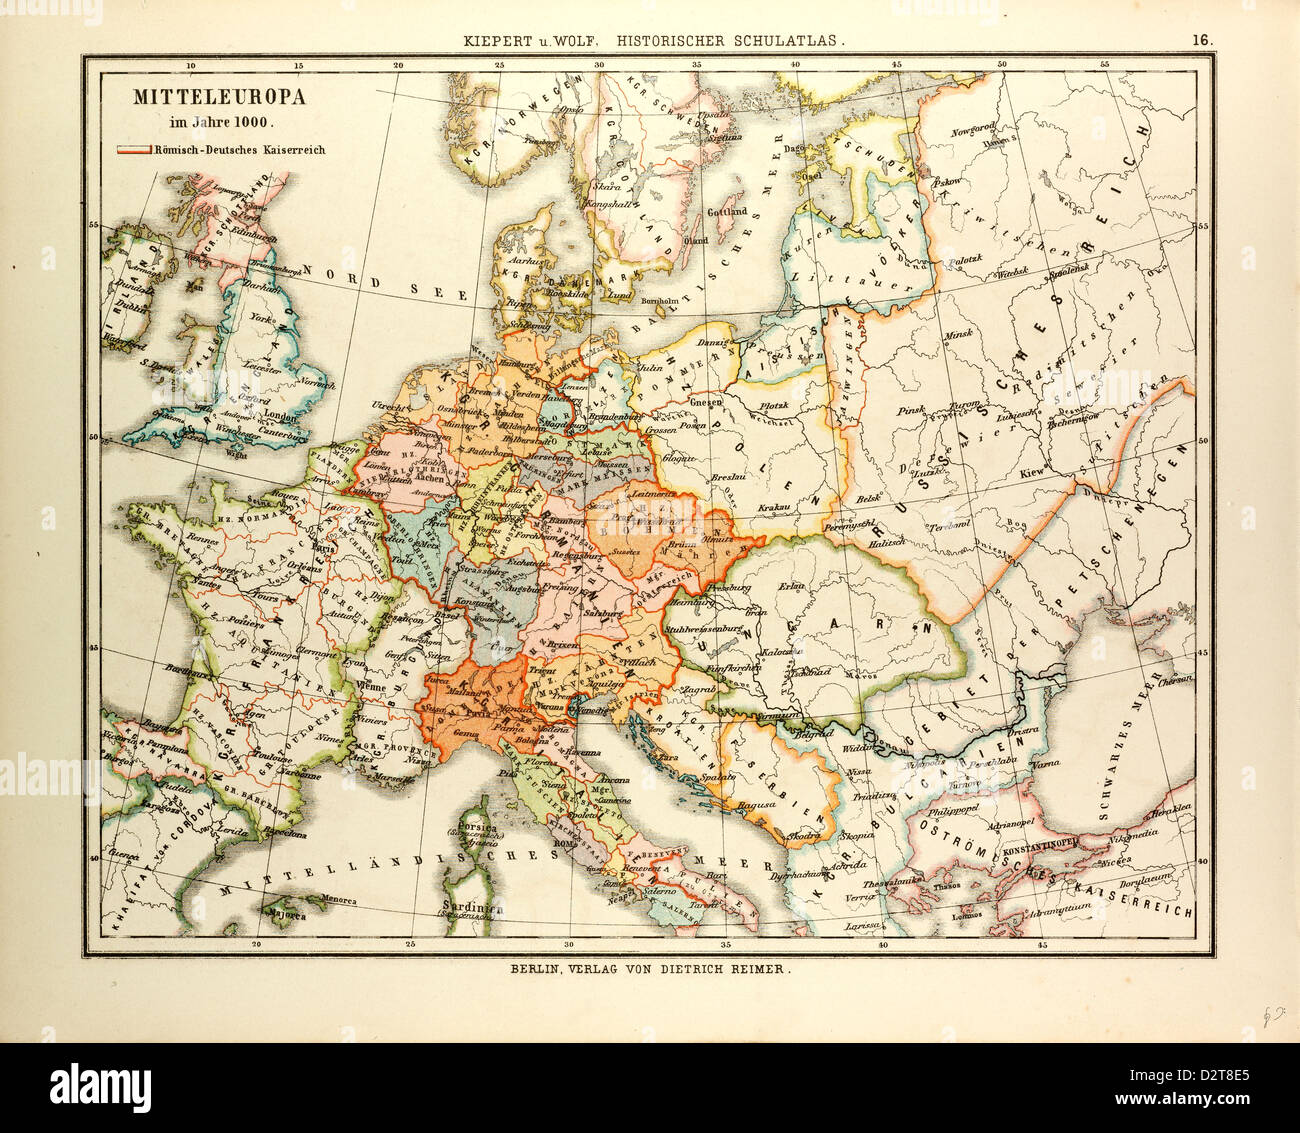 Map Of Central Europe In 1000 A D Stock Photo 53393933 Alamy